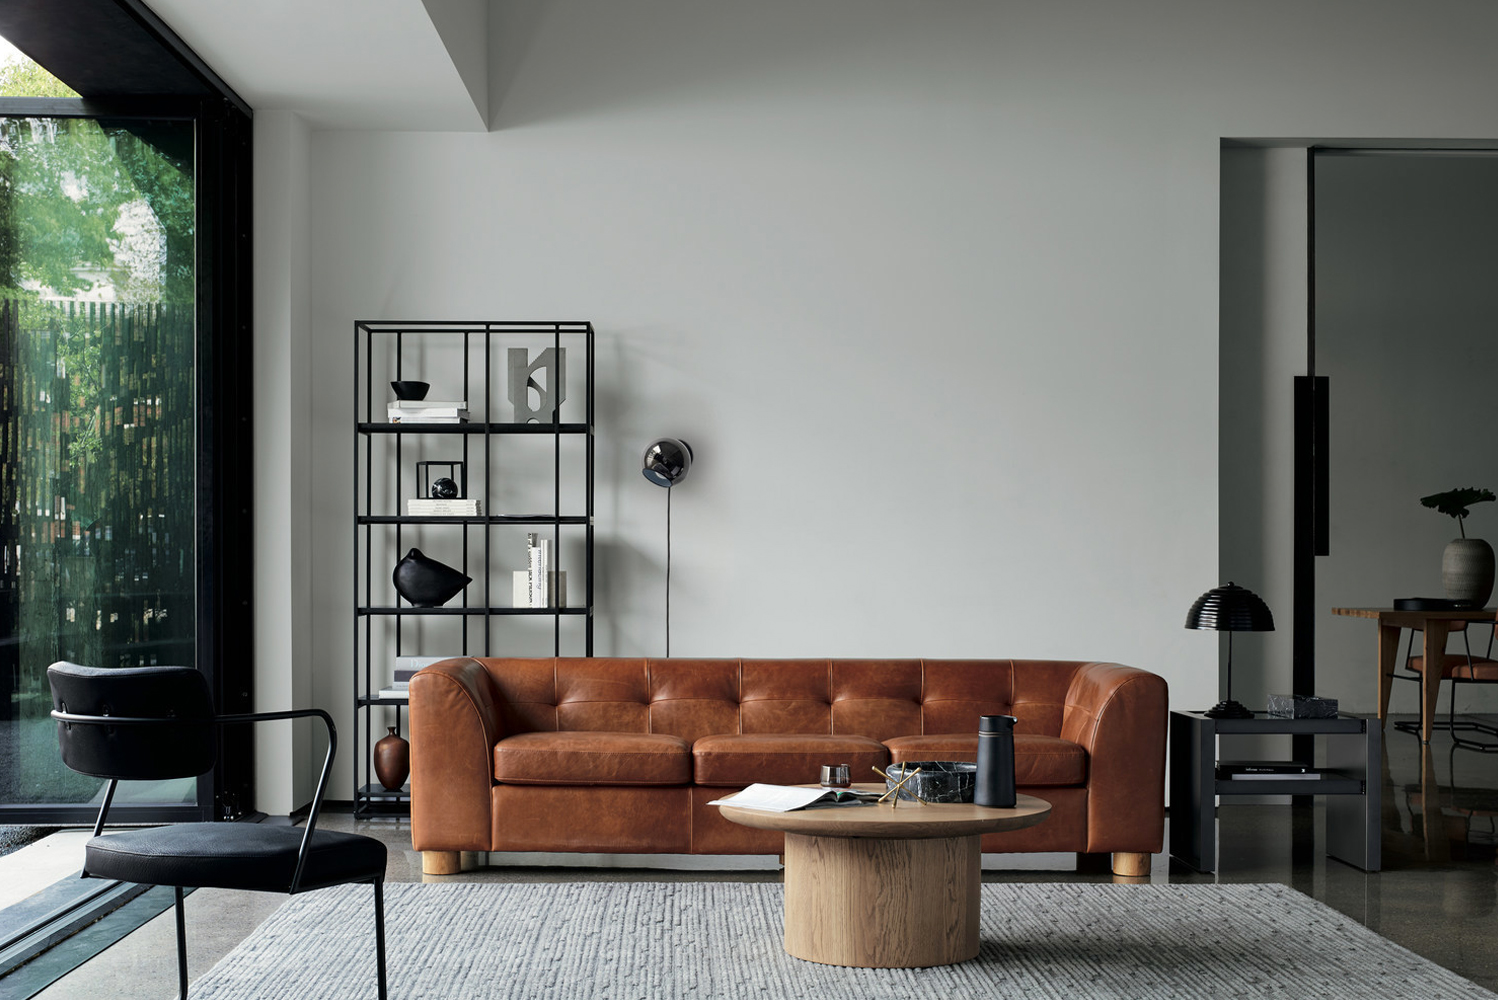 Modern hospitality: CB13 x GQ collection of furniture and